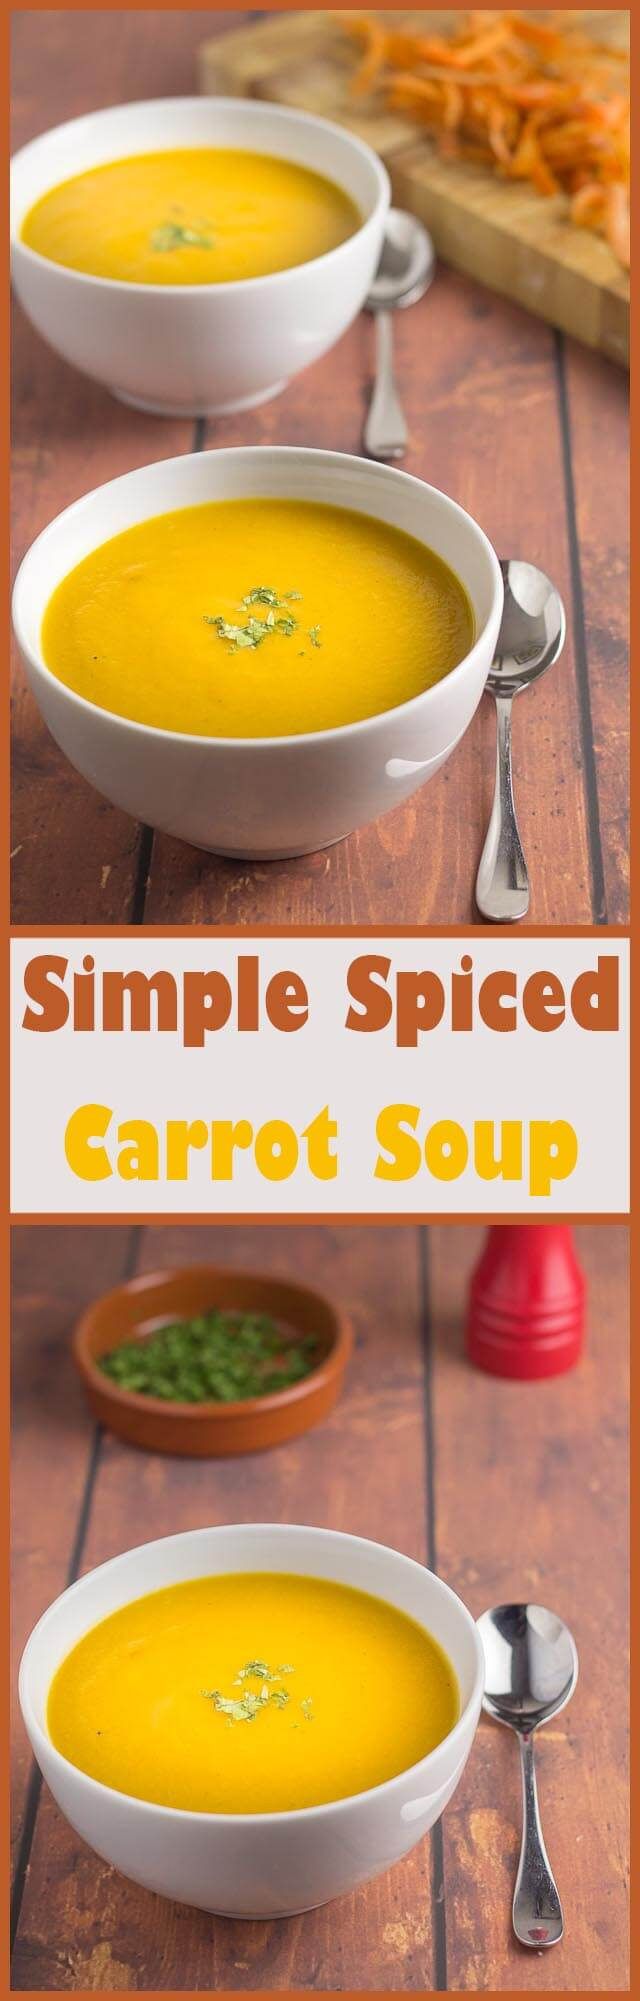 This simple spiced carrot soup proves that healthy eating doesn't have to be a complicated or expensive. Tasty, delicately spiced and vegan this makes a perfect healthy lunchtime meal.